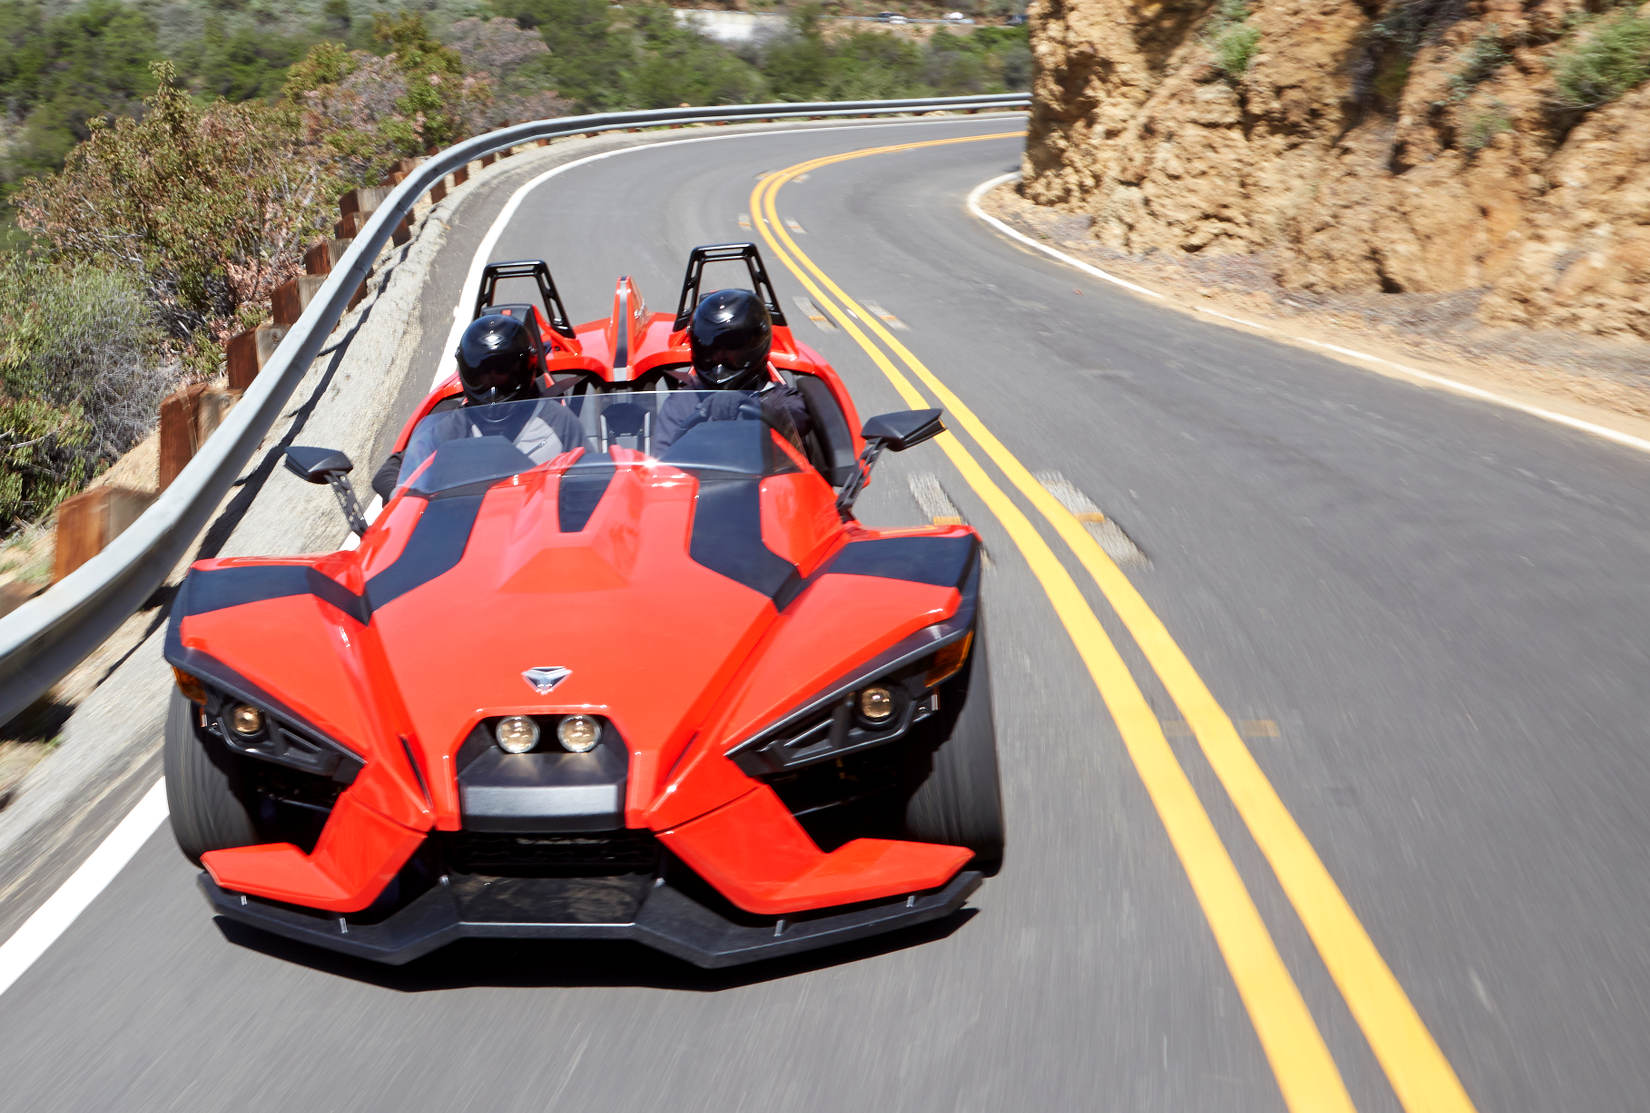 Polaris Unveils The Slingshot A Three Wheeler With Impressive Specifications With Video